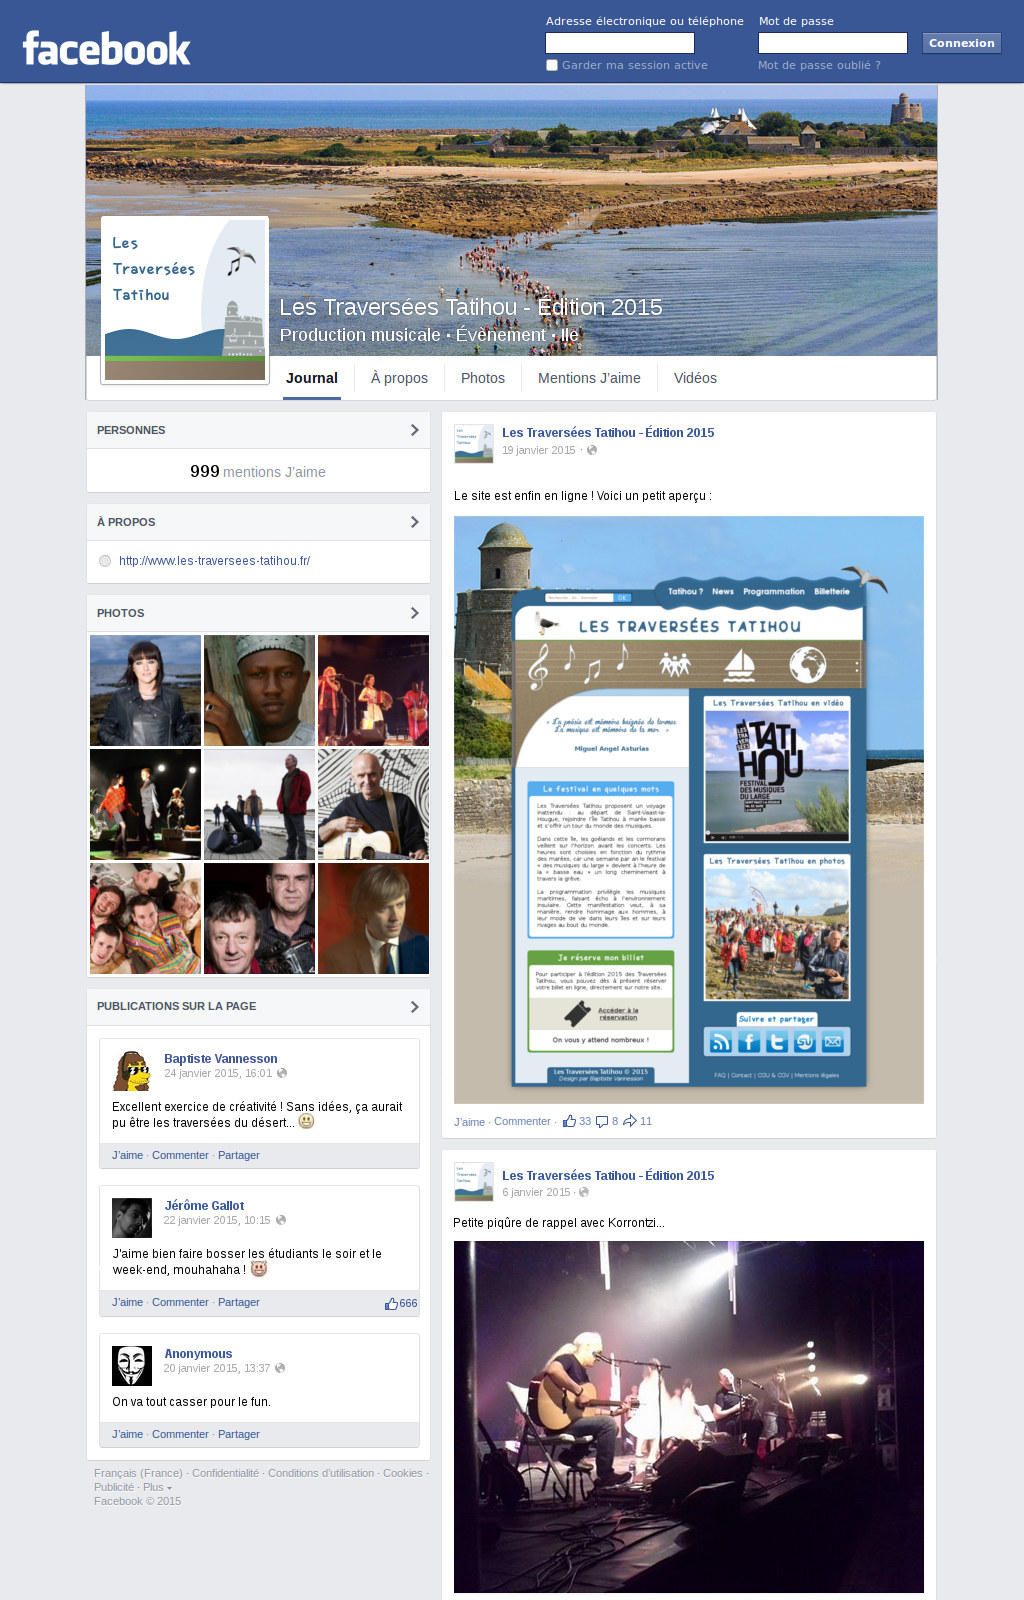 Projet 2 - Page Facebook